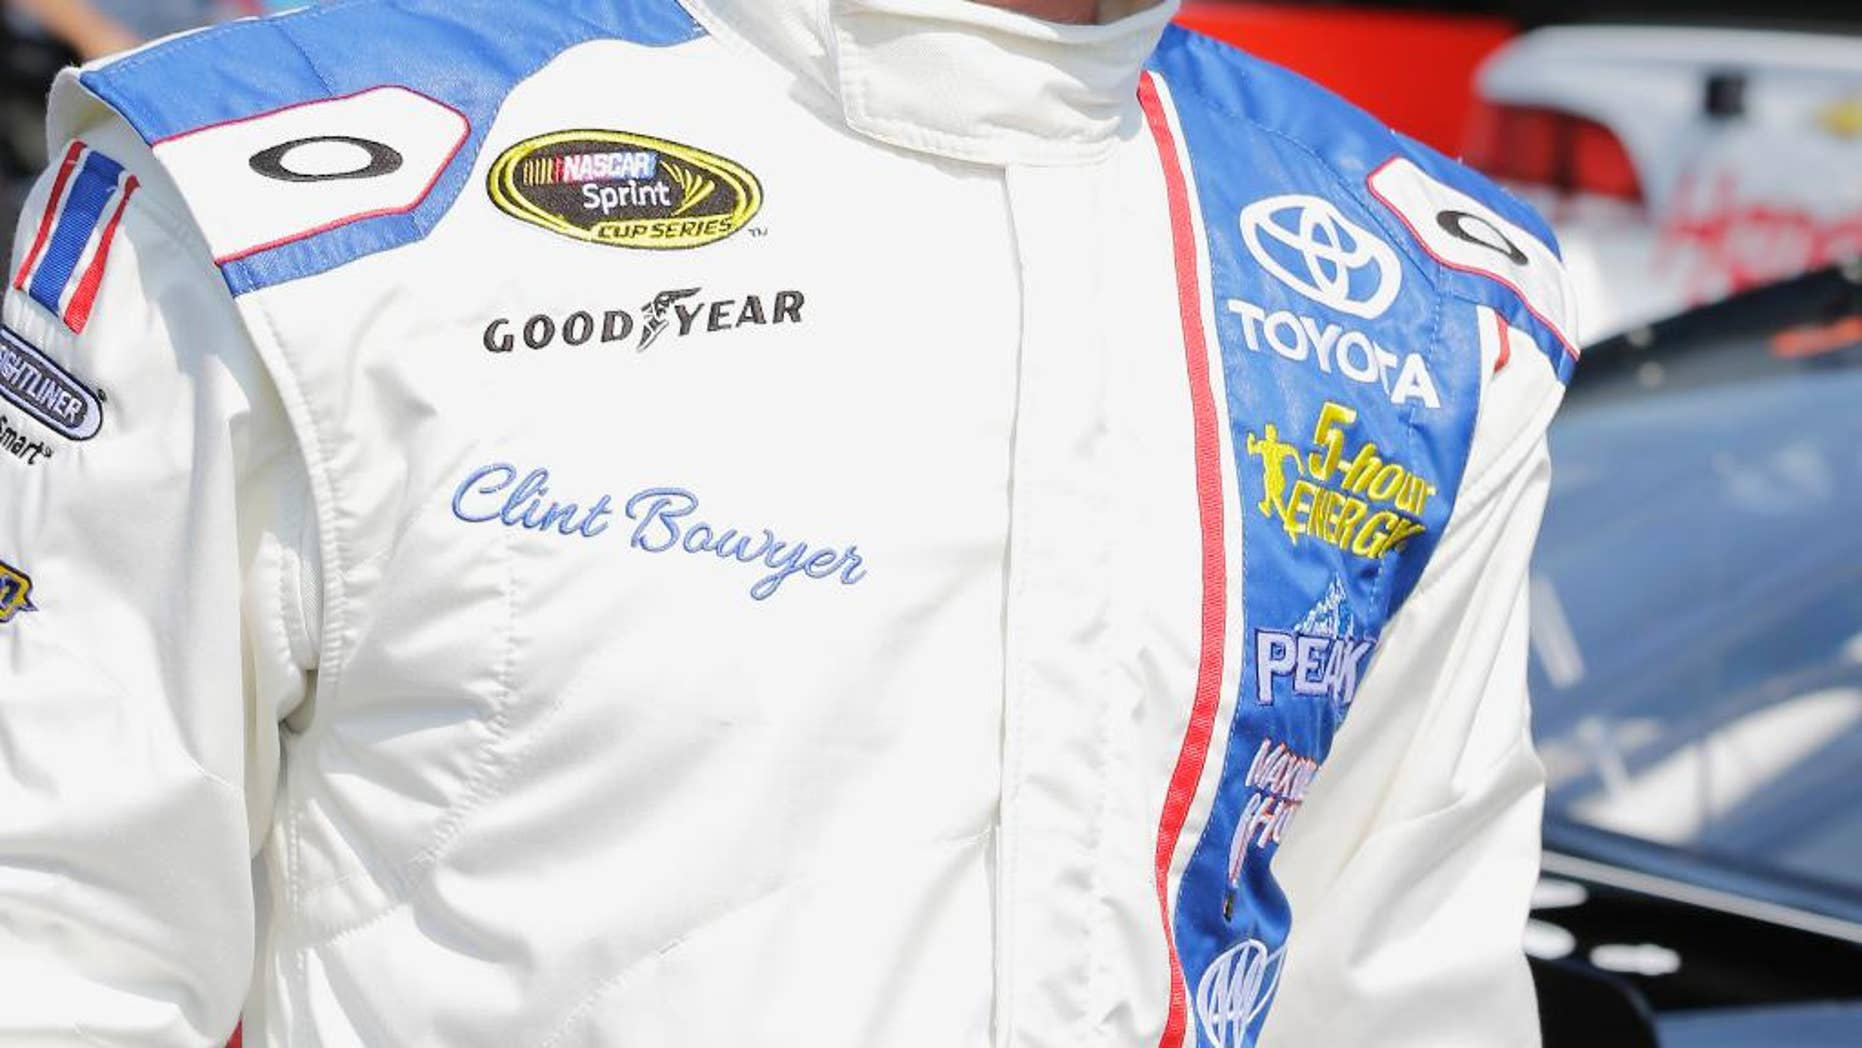 Clint Bowyer walks through the garage before a NASCAR Sprint Cup practice session at Darlington Raceway in Darlington, S.C., Friday, Sept. 4, 2015. (AP Photo/Terry Renna)